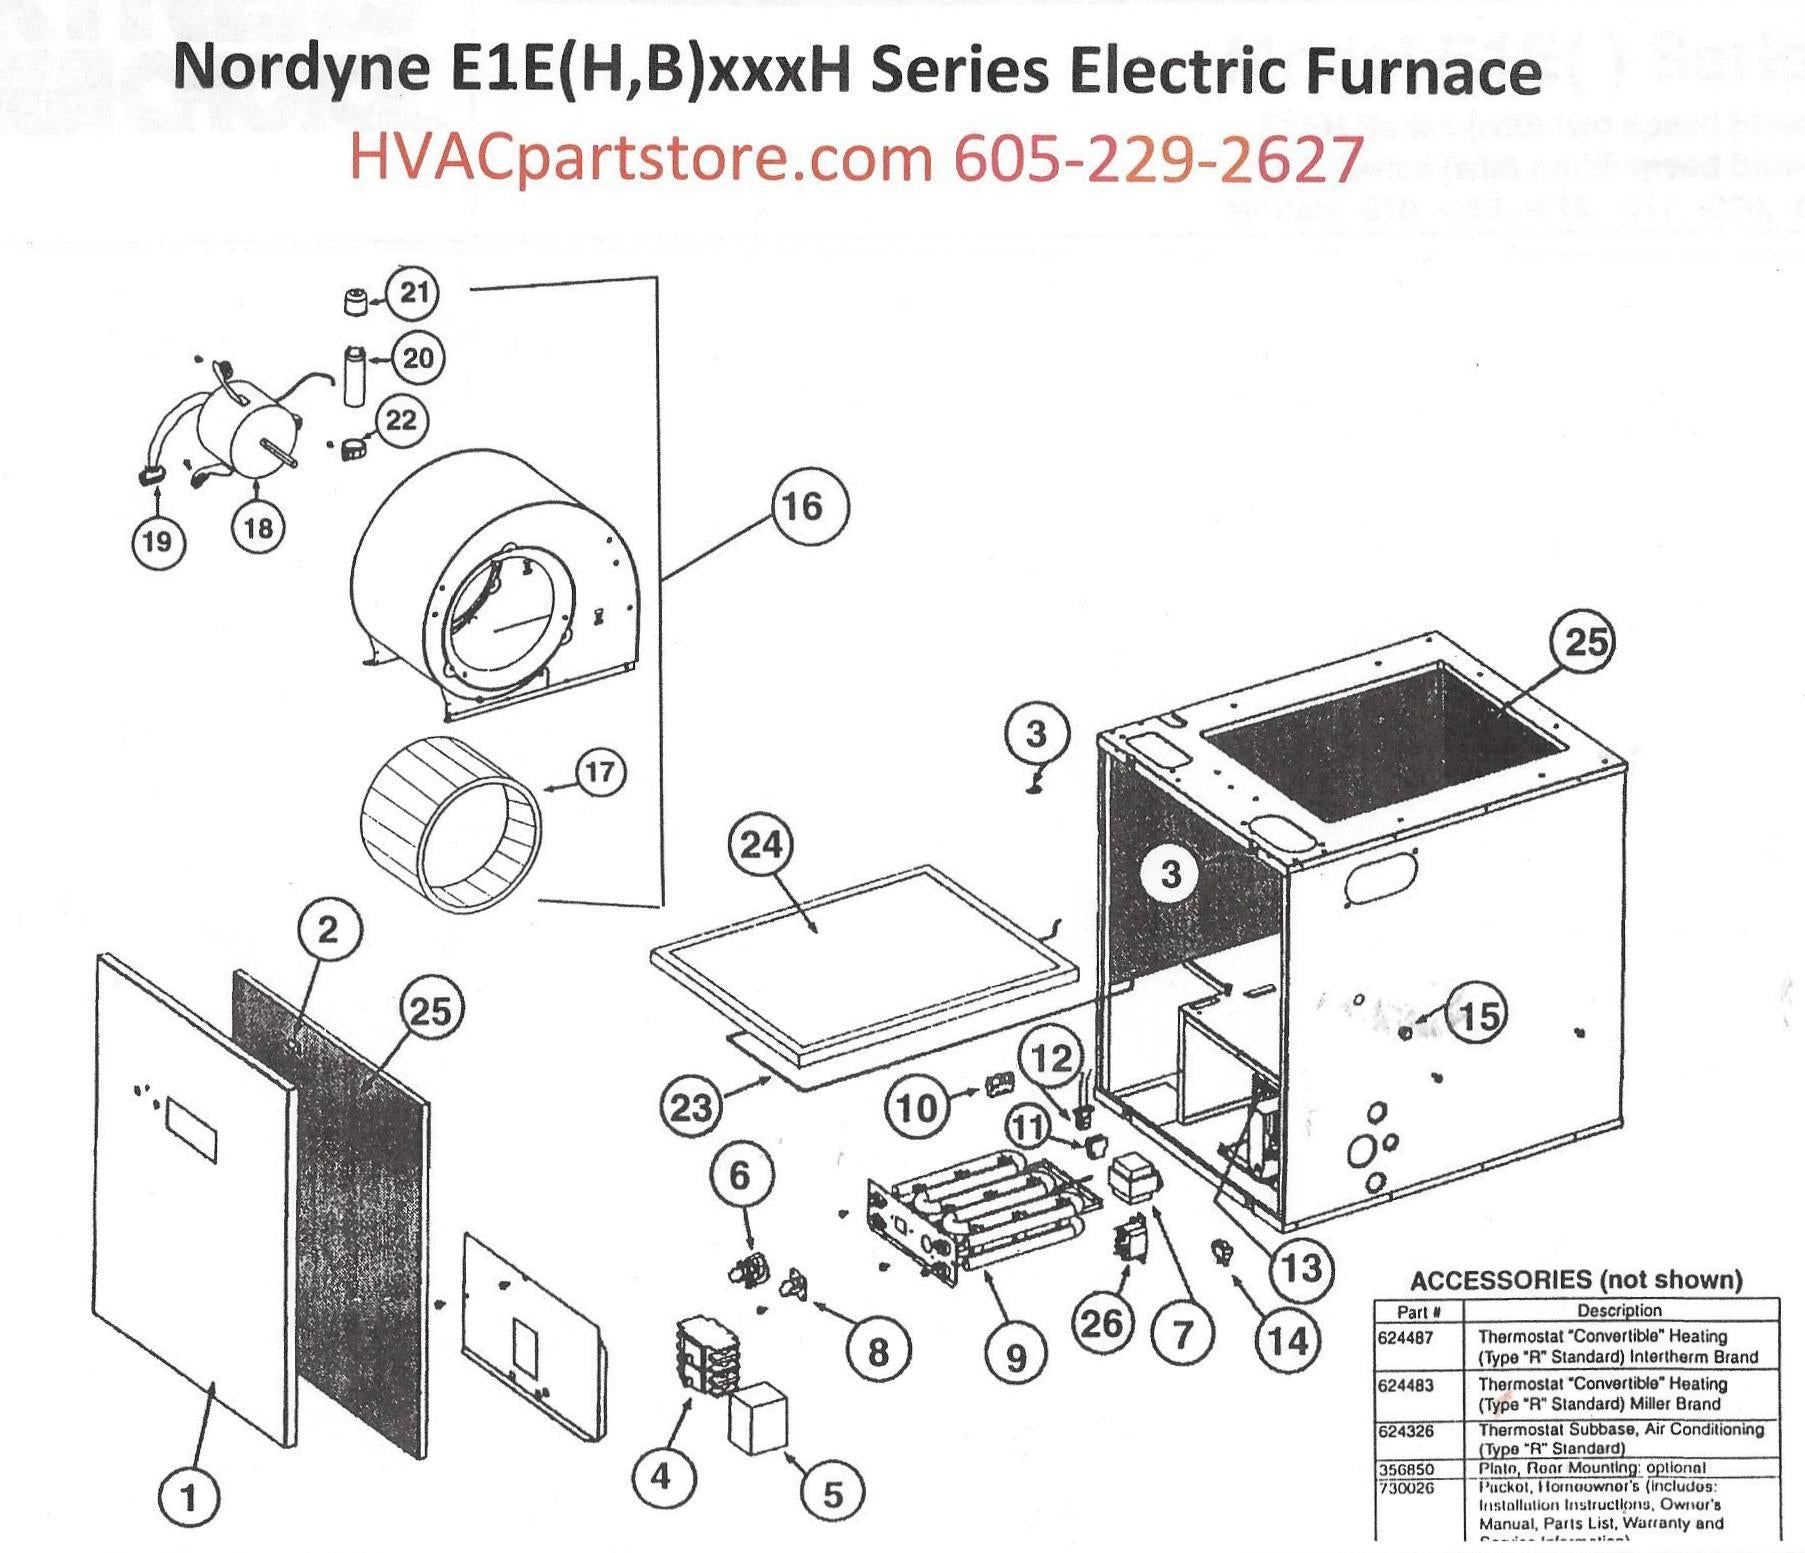 old mobile home wiring diagrams with E1eh012h Nordyne Electric Furnace Parts on Message Delete besides Kimpex 01 143 40 Cdi Bvox Wireing Diagram in addition Electrical Service in addition Brentwood Mobile Home Wiring Diagram likewise docstoc.